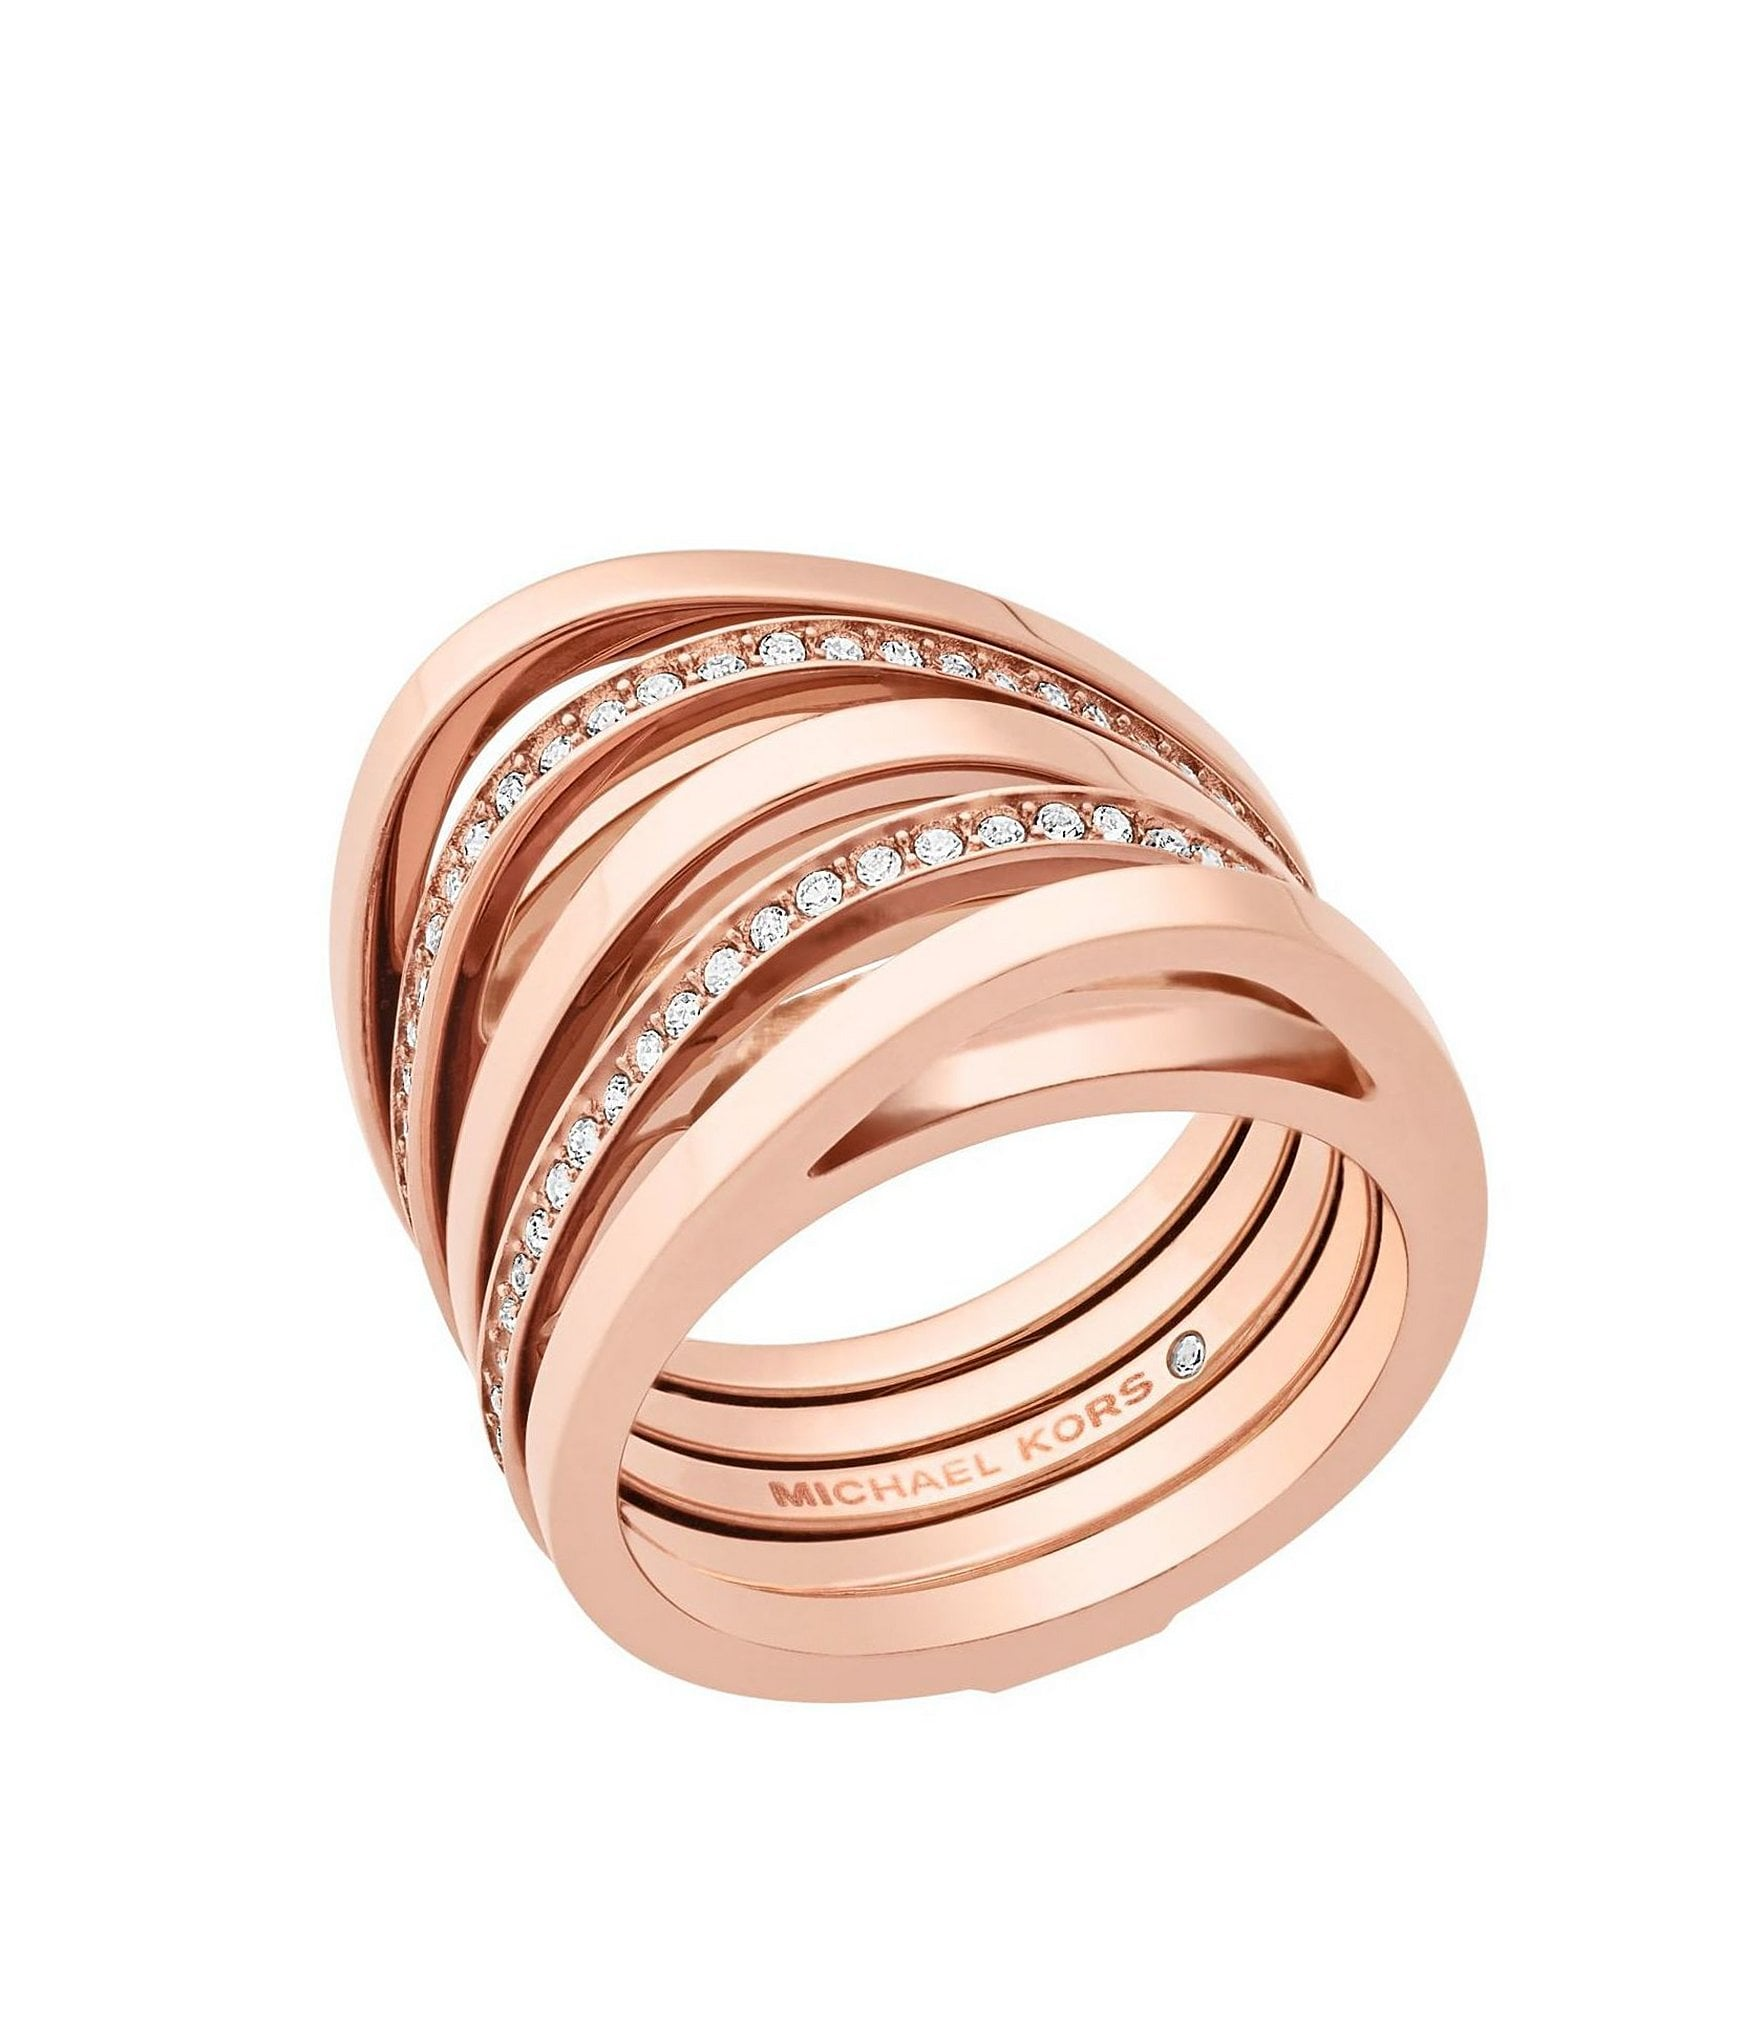 Accessories Jewelry Rings